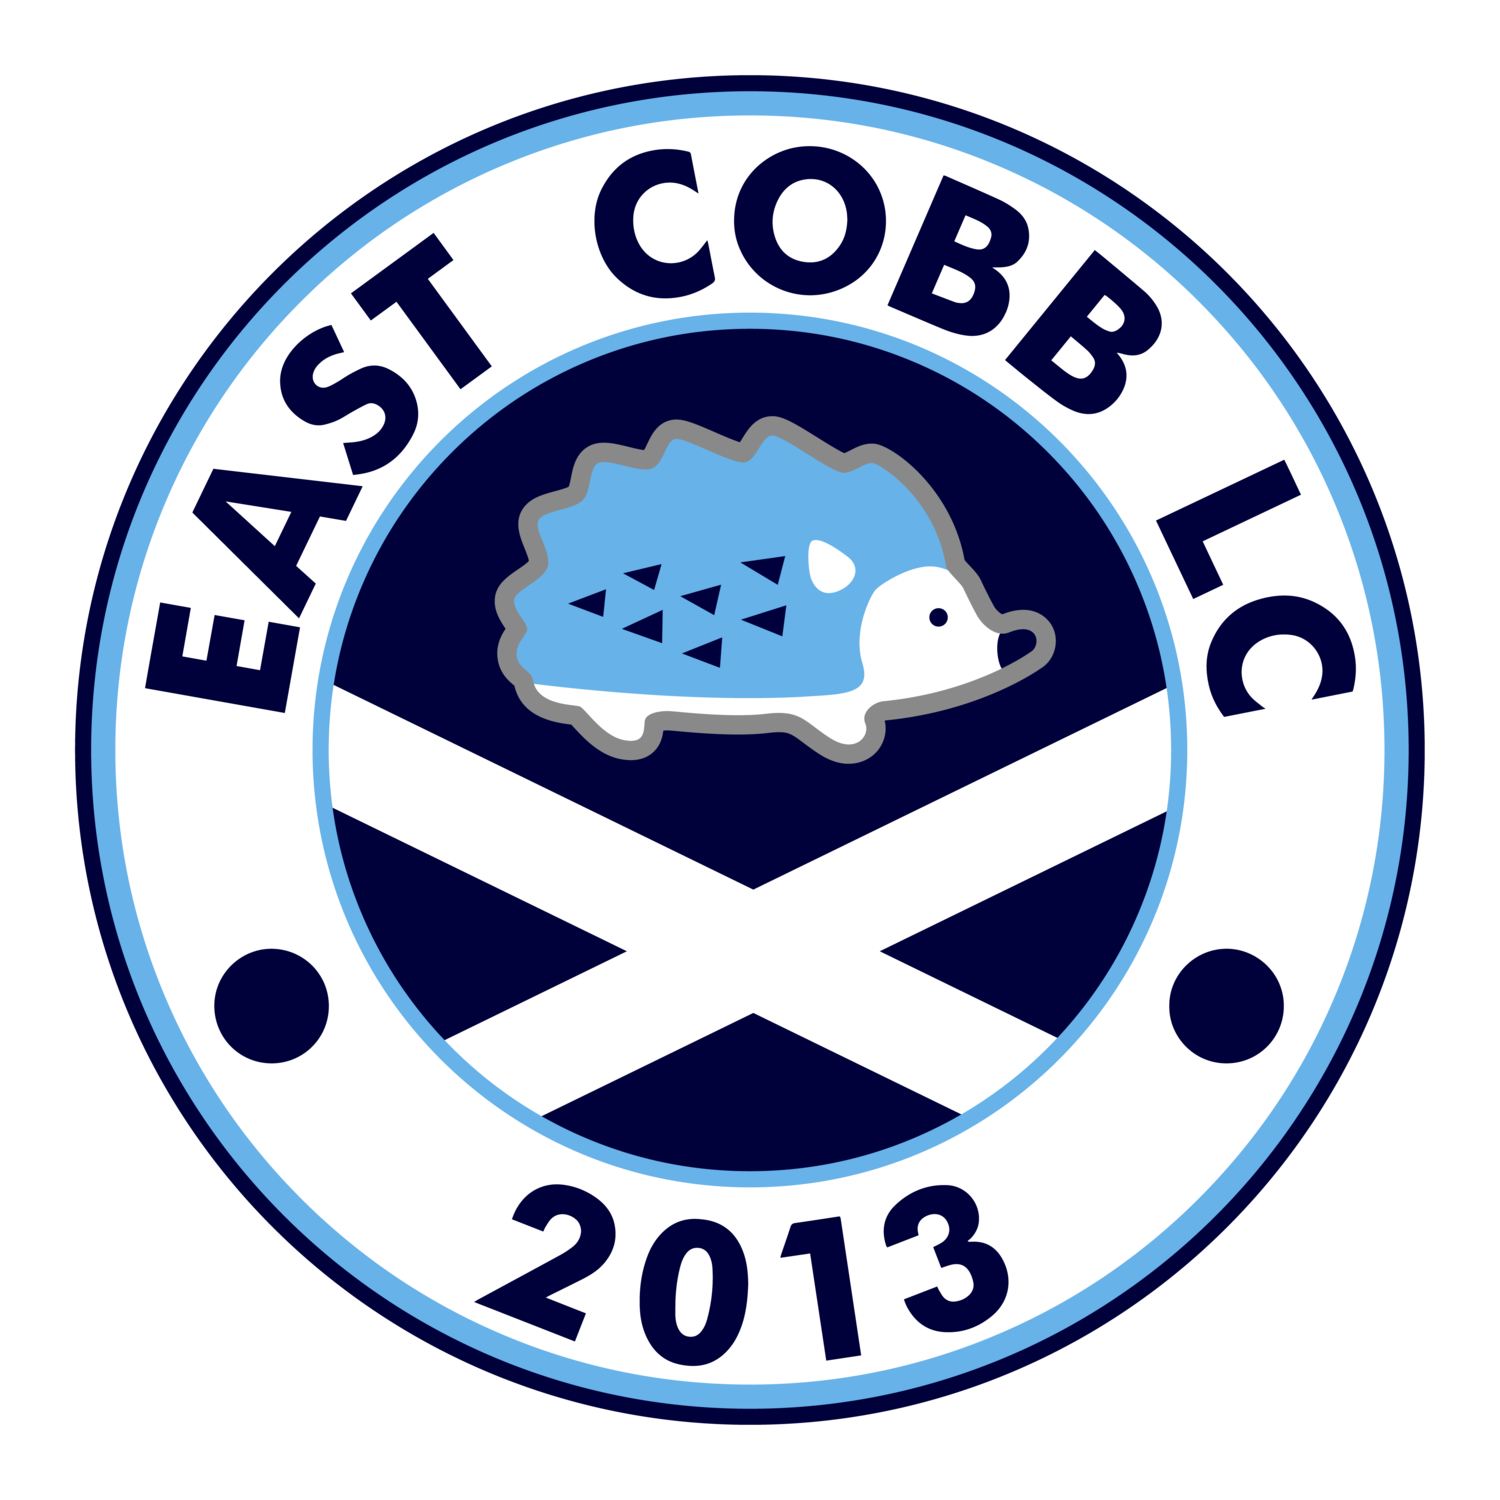 East Cobb Lacrosse Club